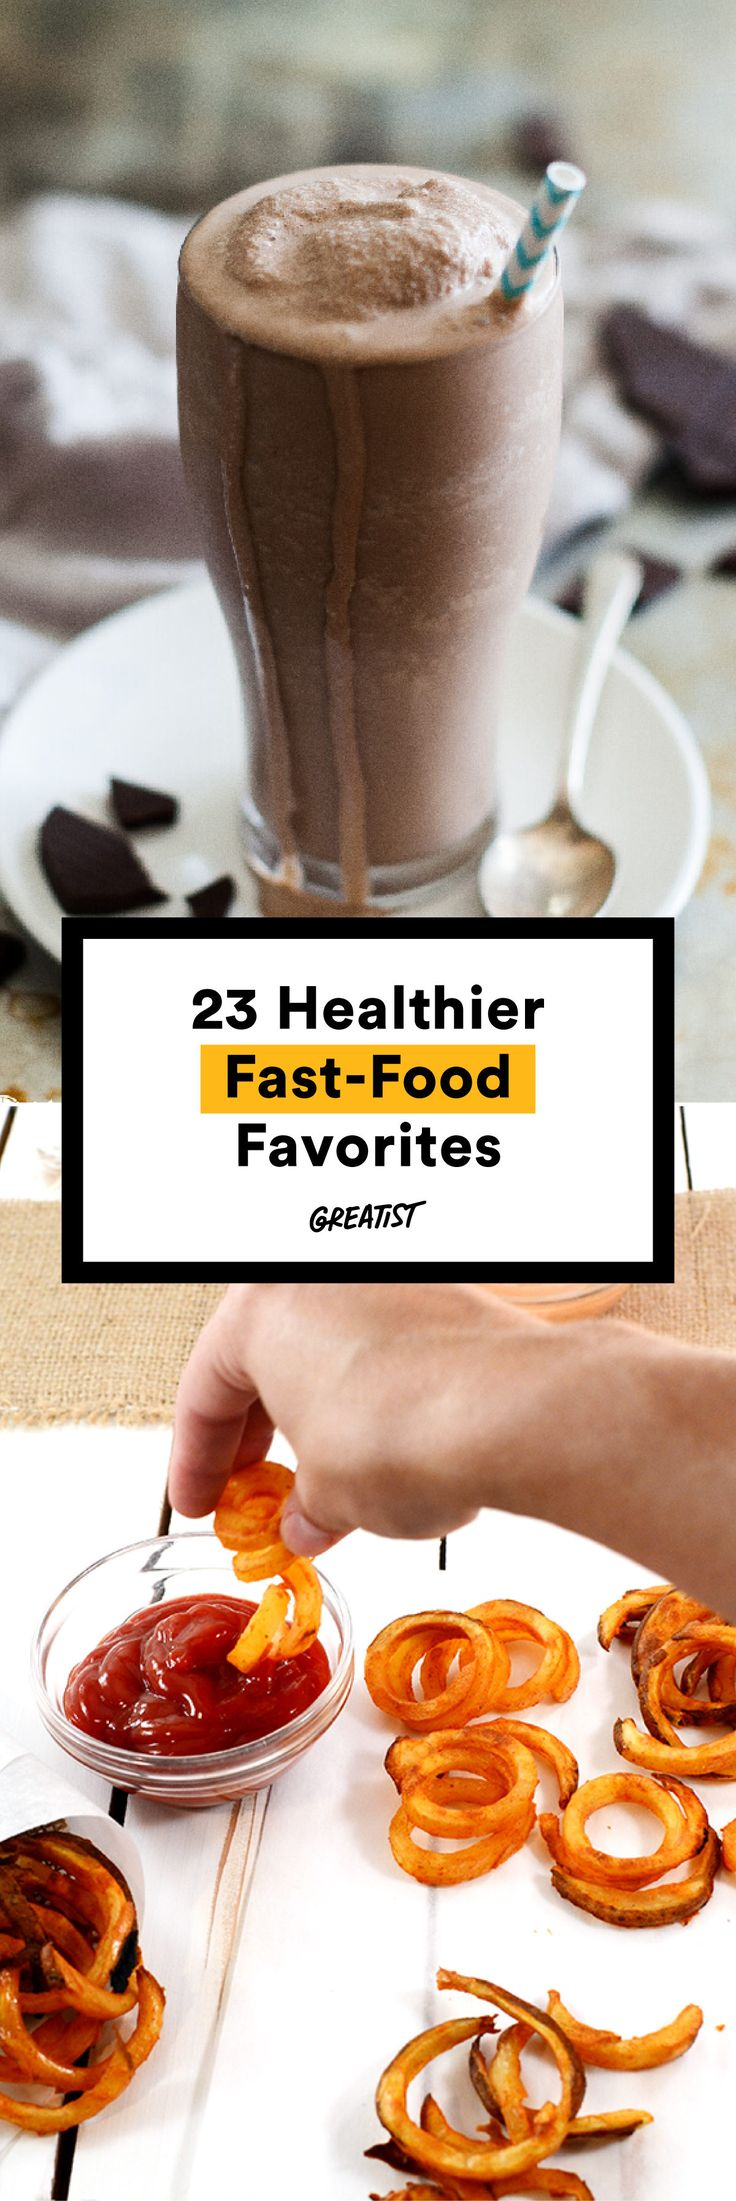 Recipes so close to the real deal, you'd never believe they're healthy. #greatist http://greatist.com/eat/healthier-fast-food-recipes